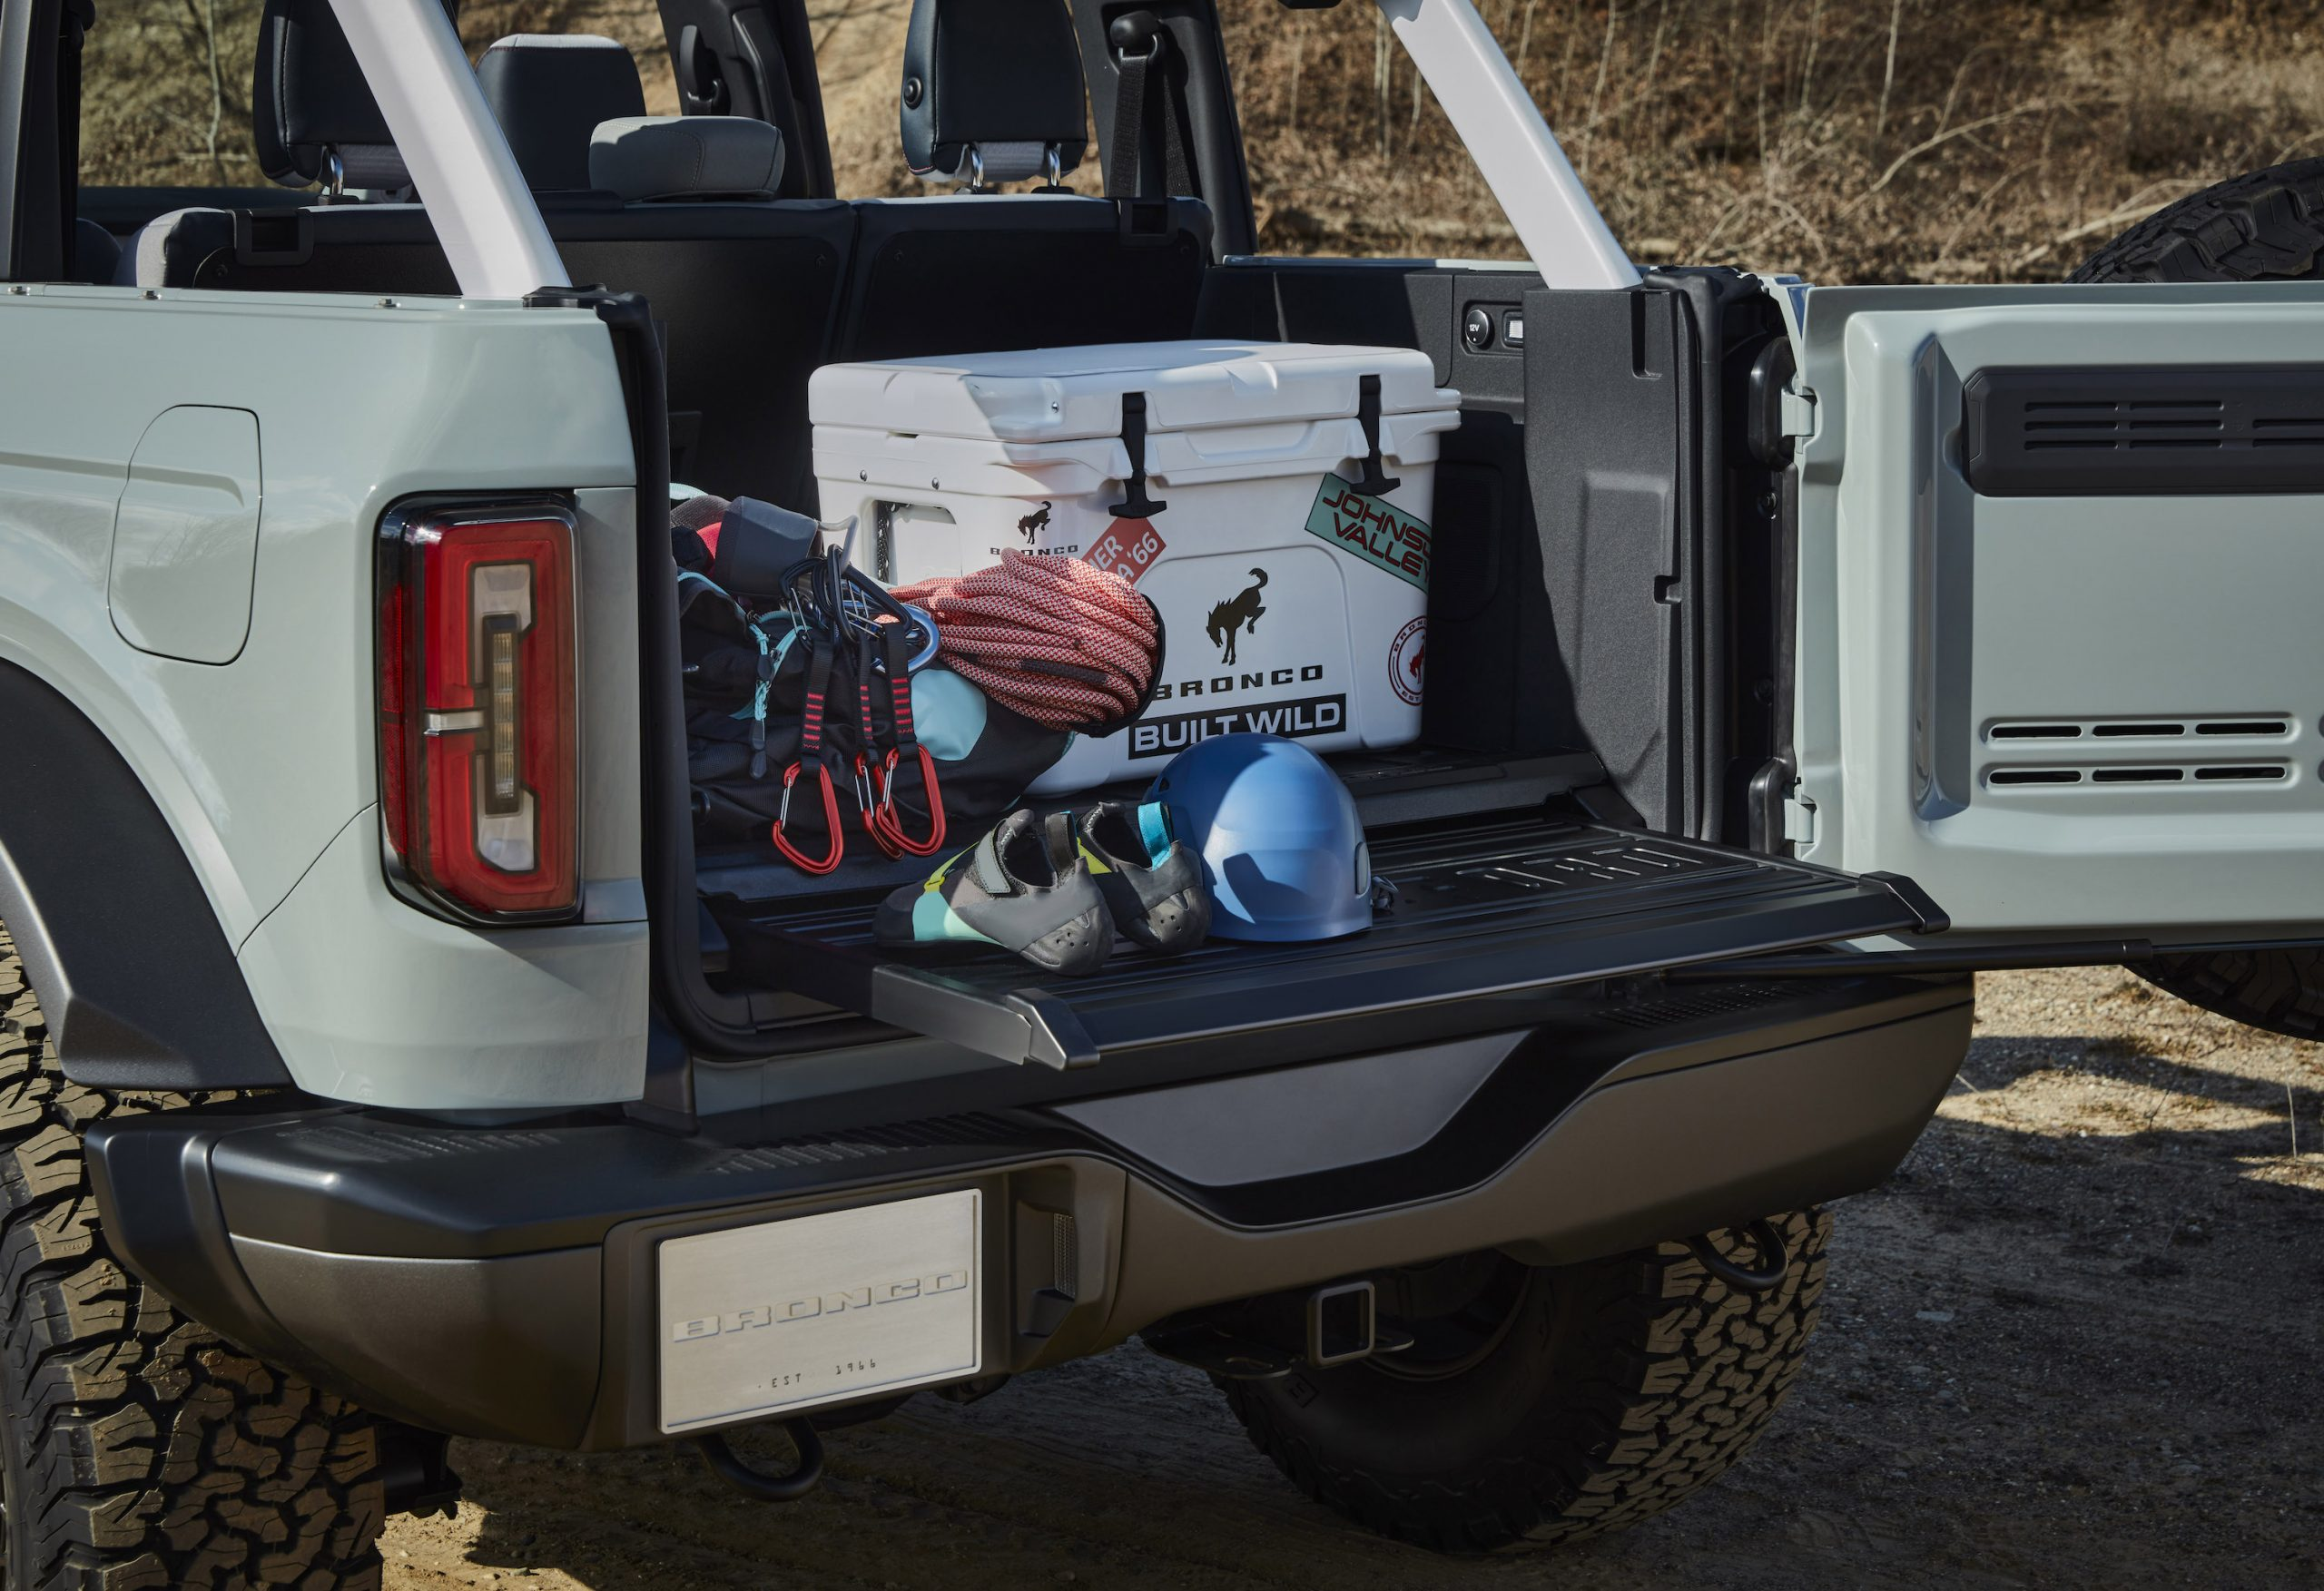 2021 Ford Bronco Four Door Open Tailgate Trunk Gear